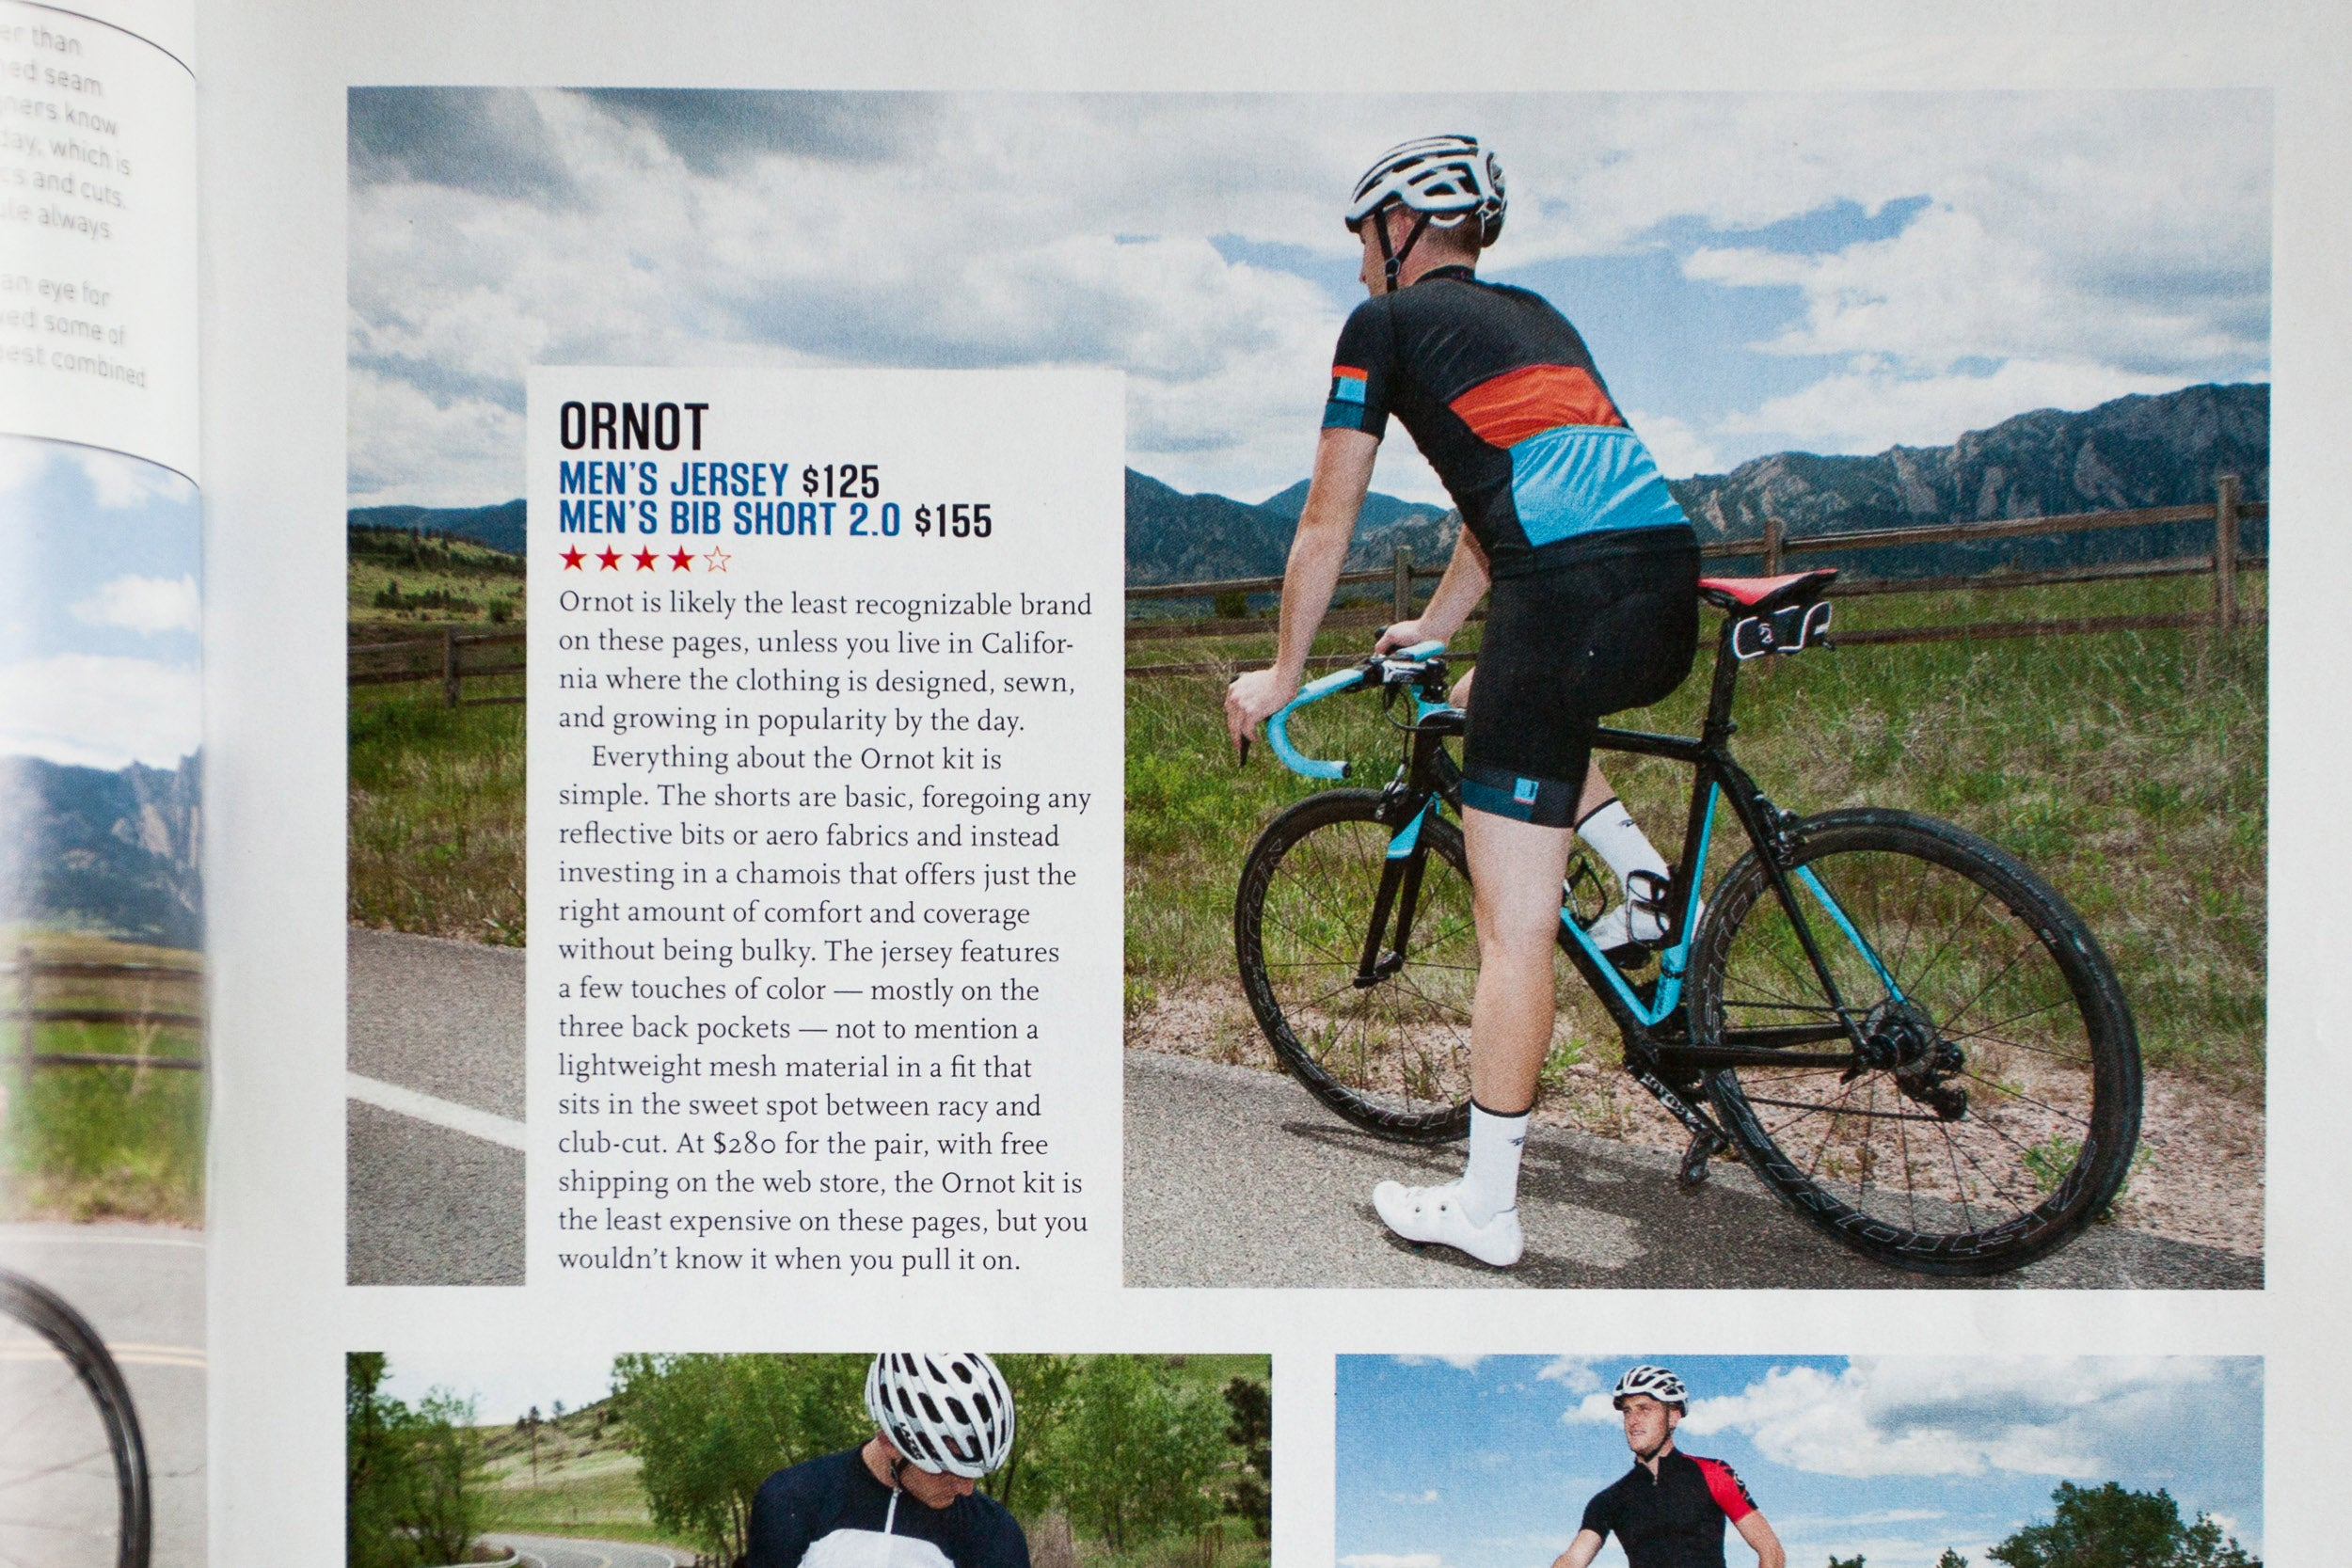 f0a68b32b Ornot Men s Jersey Bib Shorts 2.0 Velo News Review. Velo Magazine - Ornot